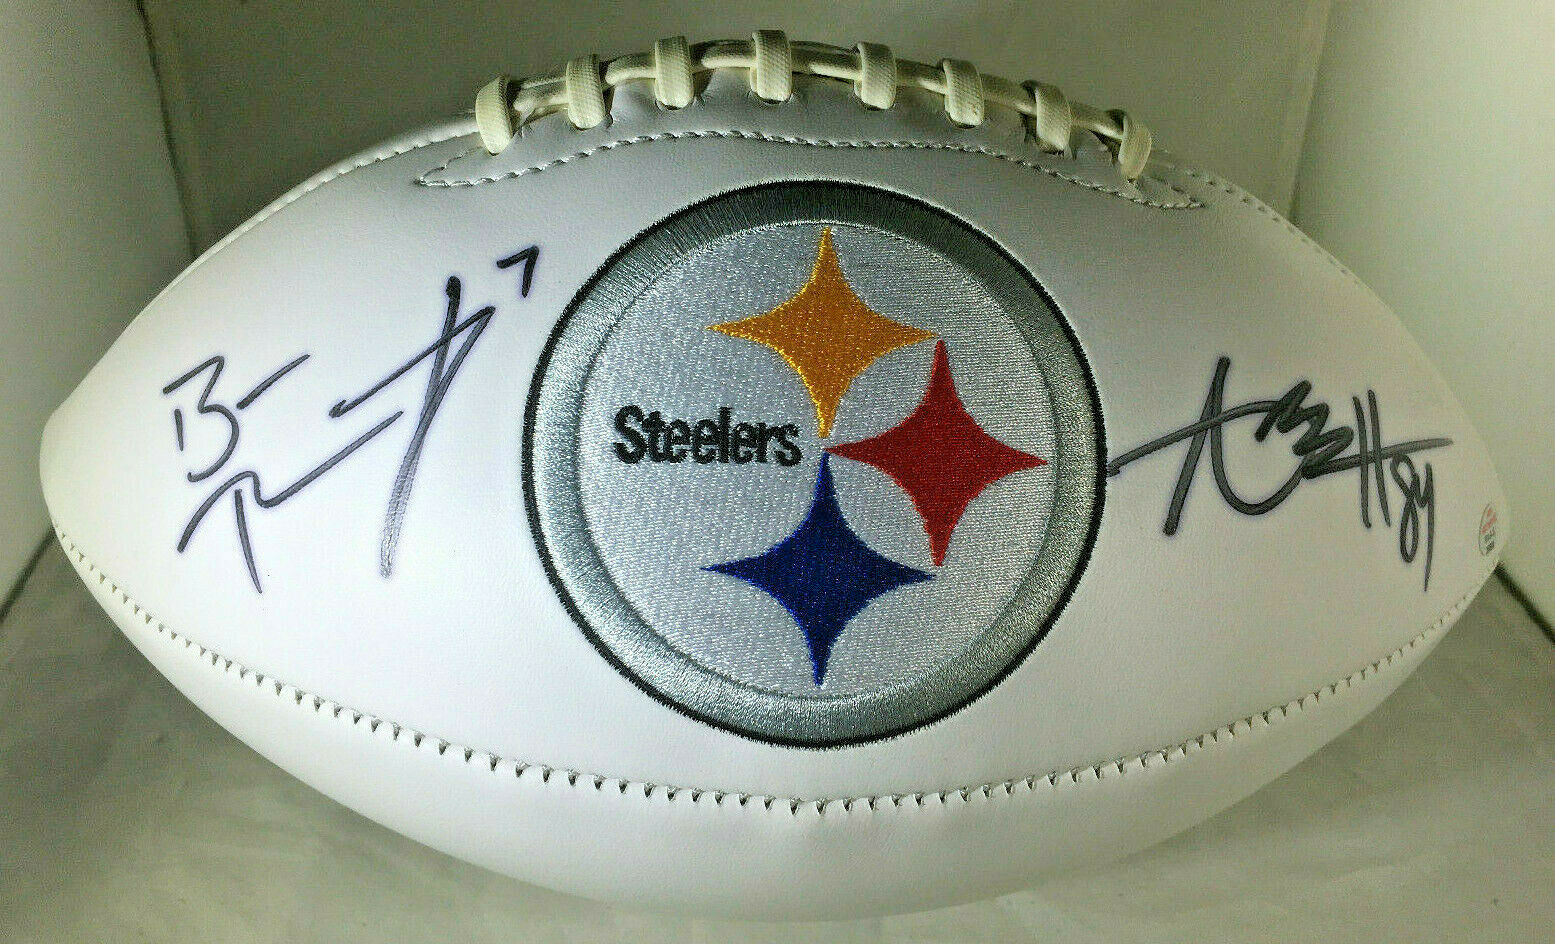 ROETHLISBERGER & BROWN / AUTOGRAPHED PITTSBURGH STEELERS LOGO WHITE FOOTBALL COA